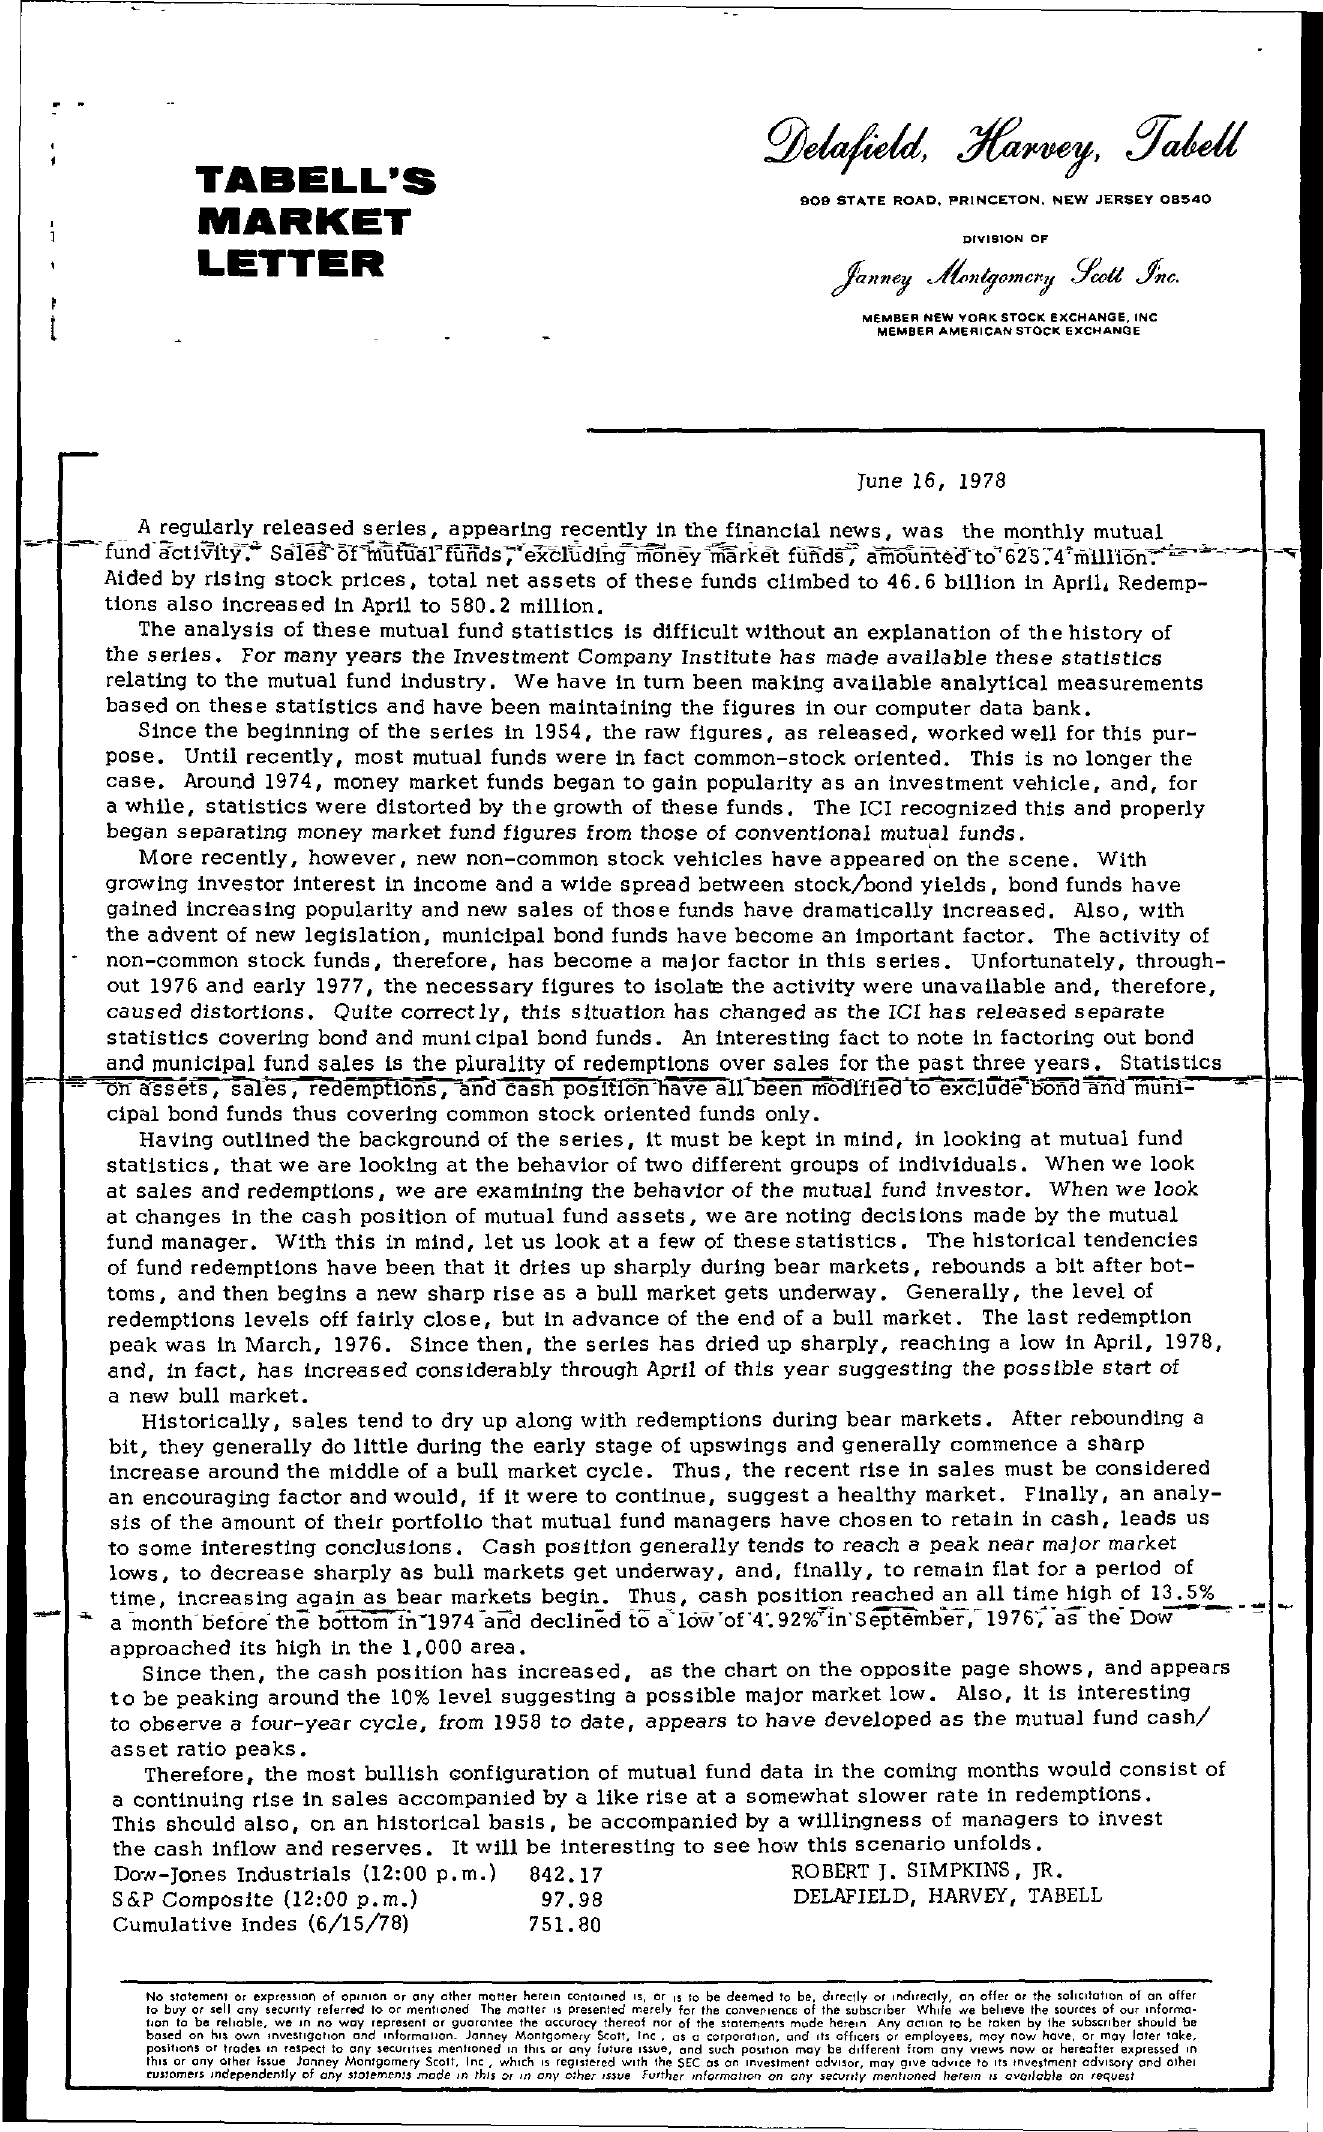 Tabell's Market Letter - June 16, 1978 page 1